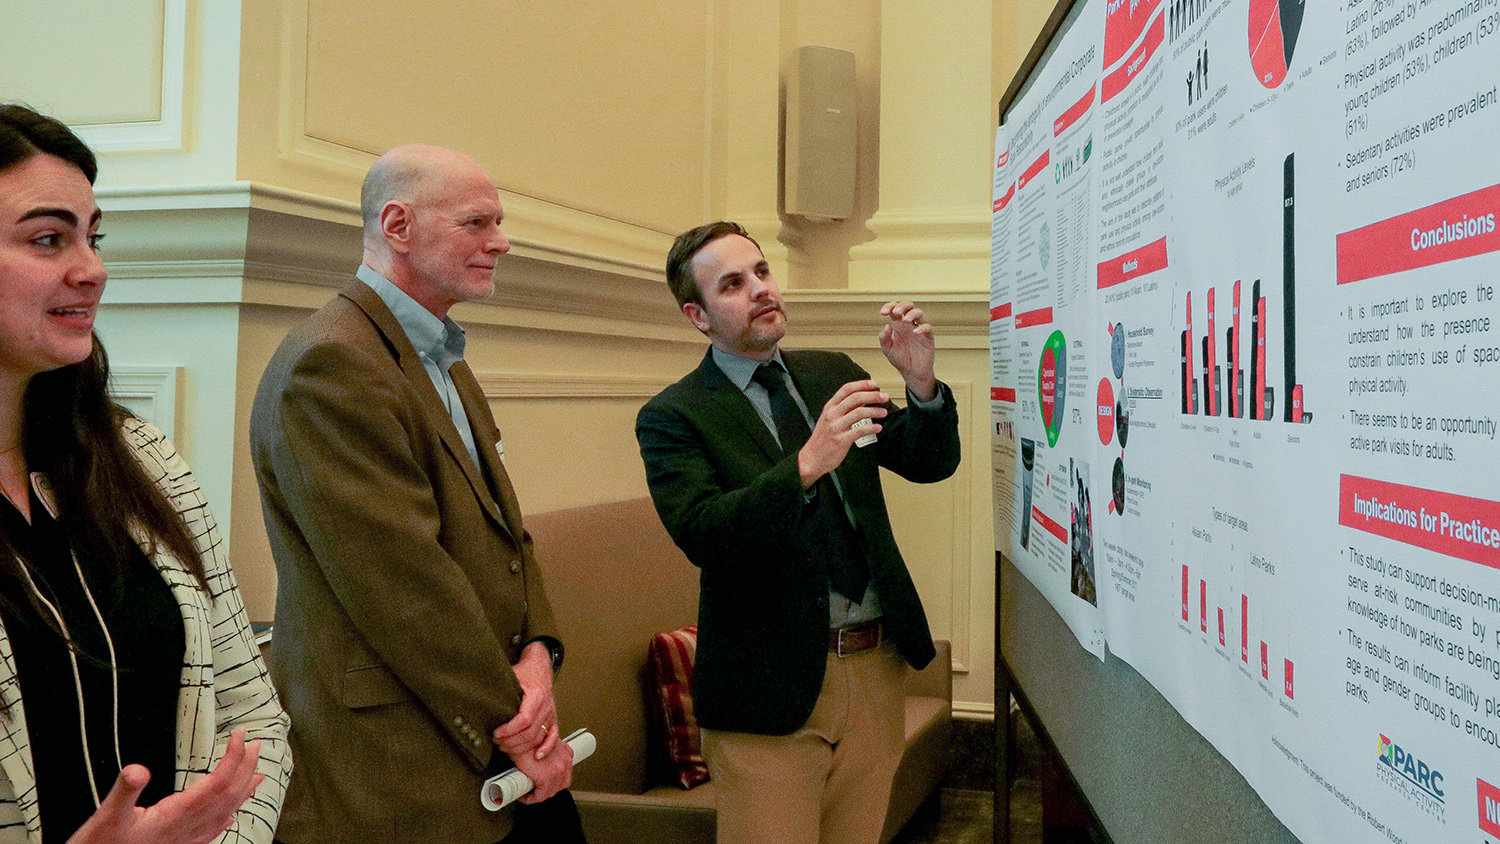 People Looking at a Visual - Graduate Student Resources -Parks Recreation and Tourism Management NC State